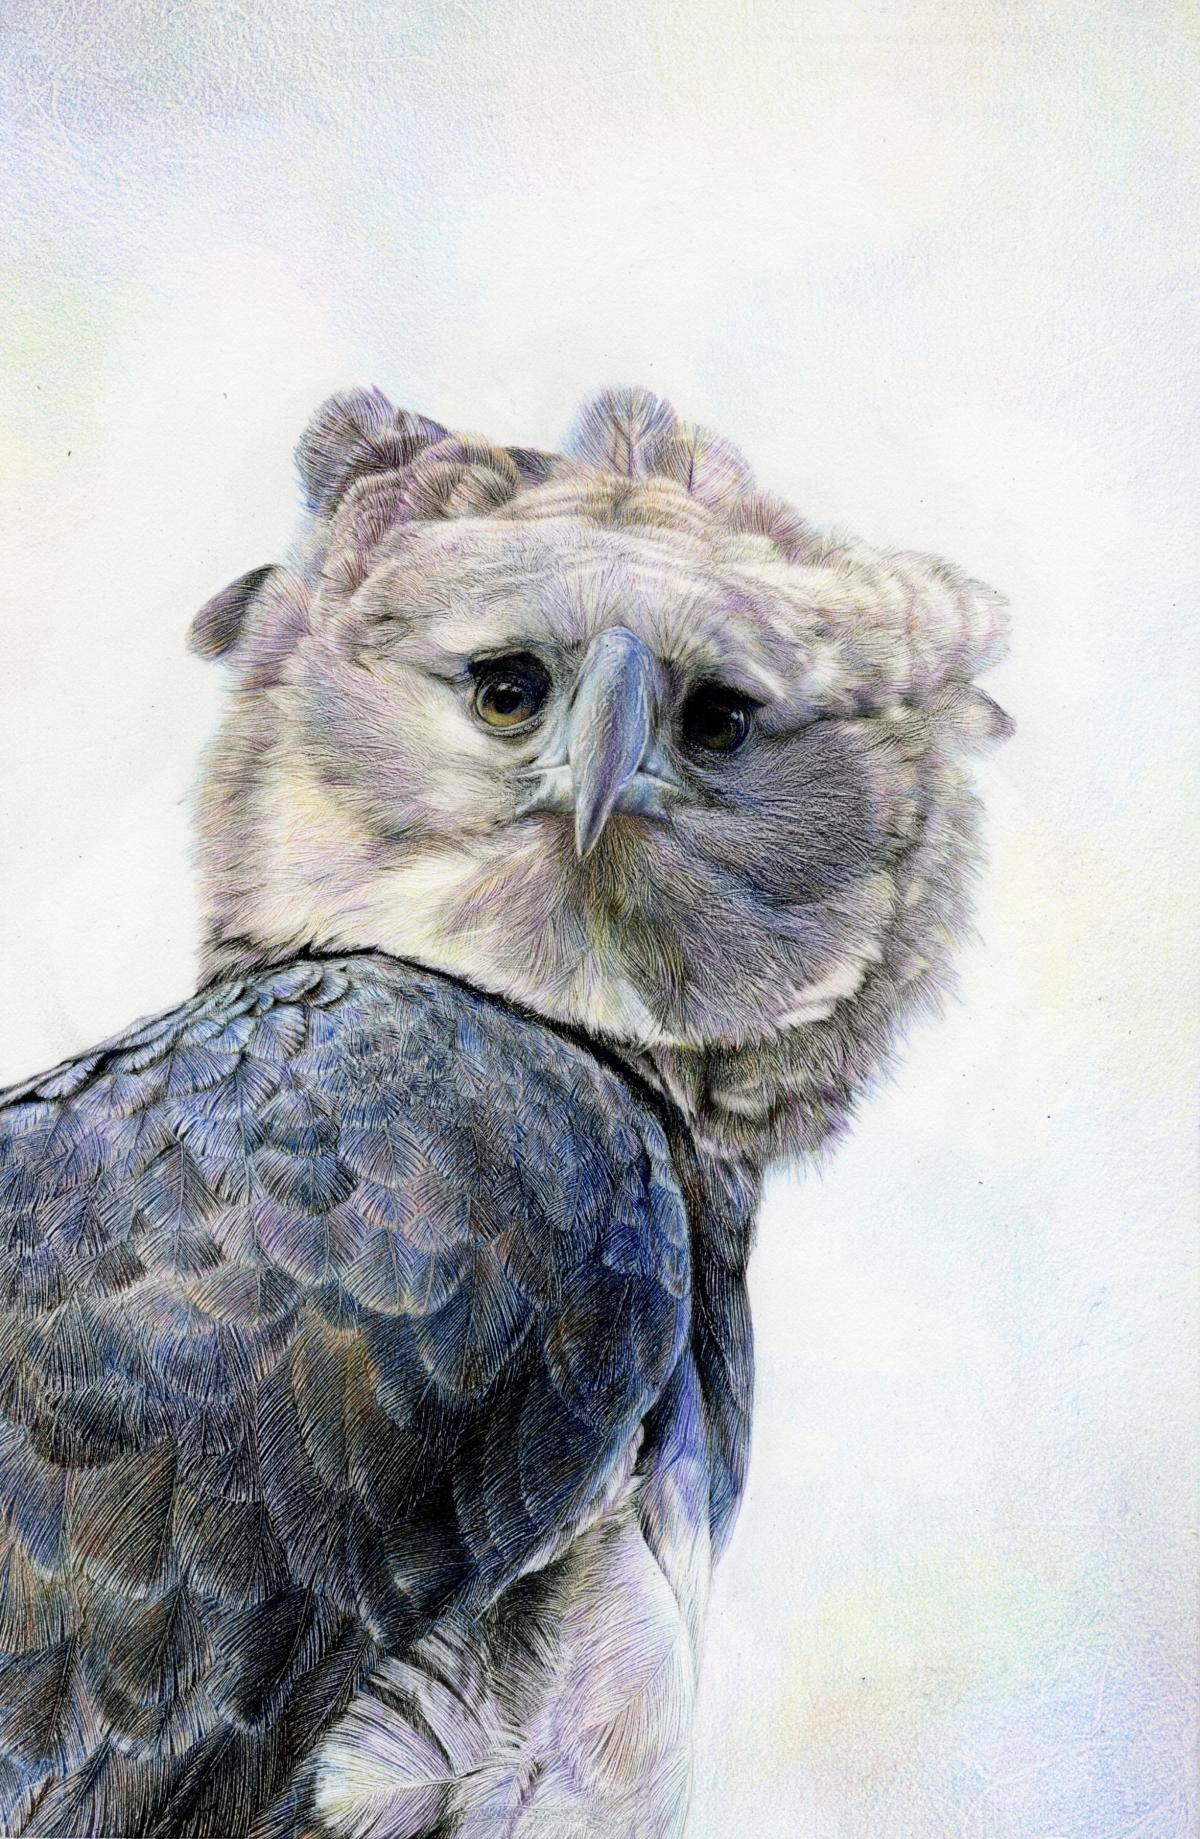 Harpy - Spirit of the Wind | Wallhanging by Nick Day | Artists for Conservation 2020